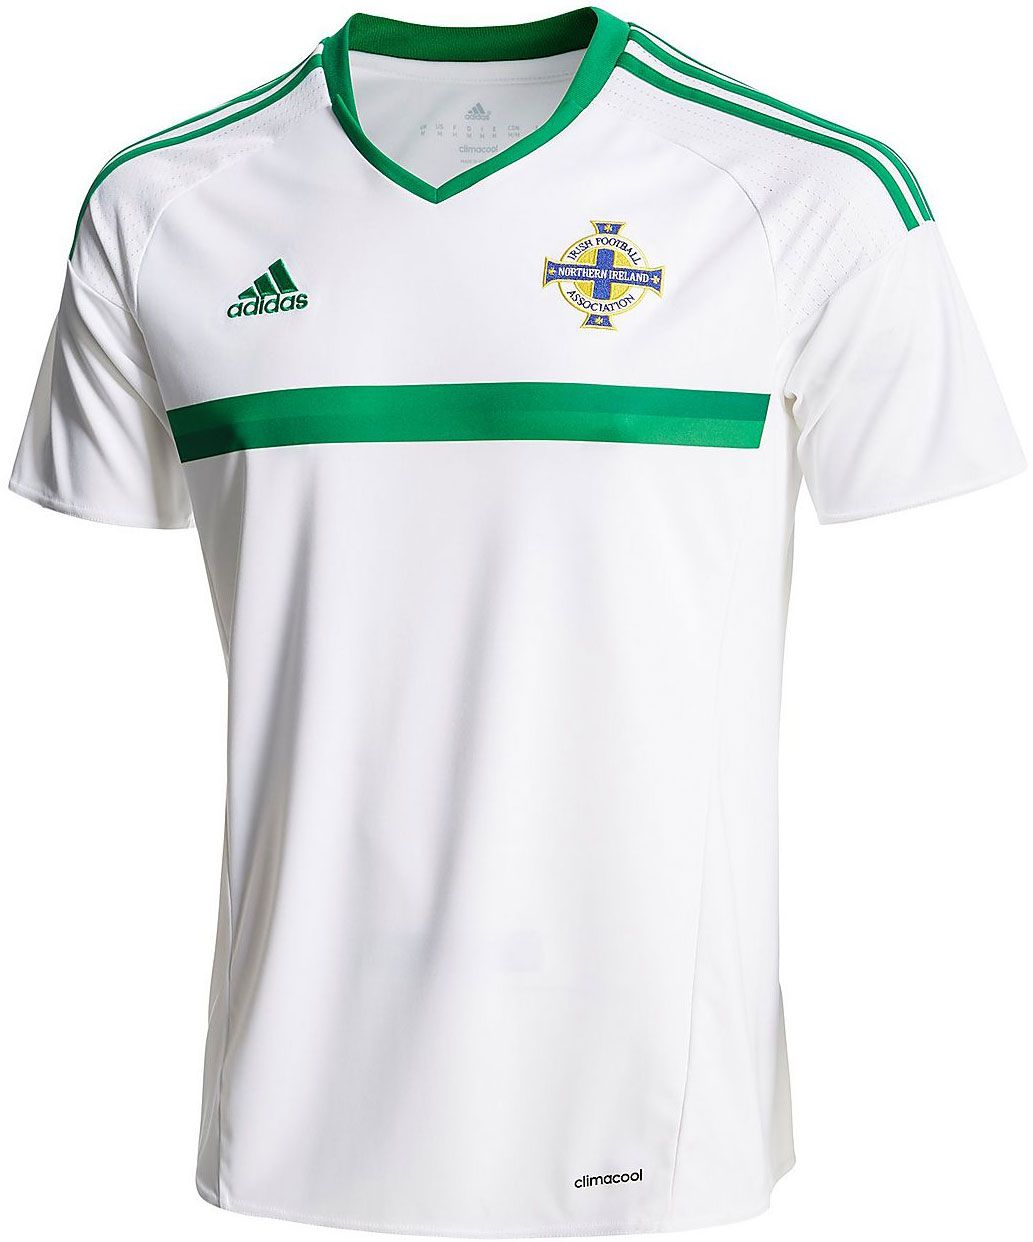 Northern Ireland 2016 Euro Adidas Away Kit Shirts